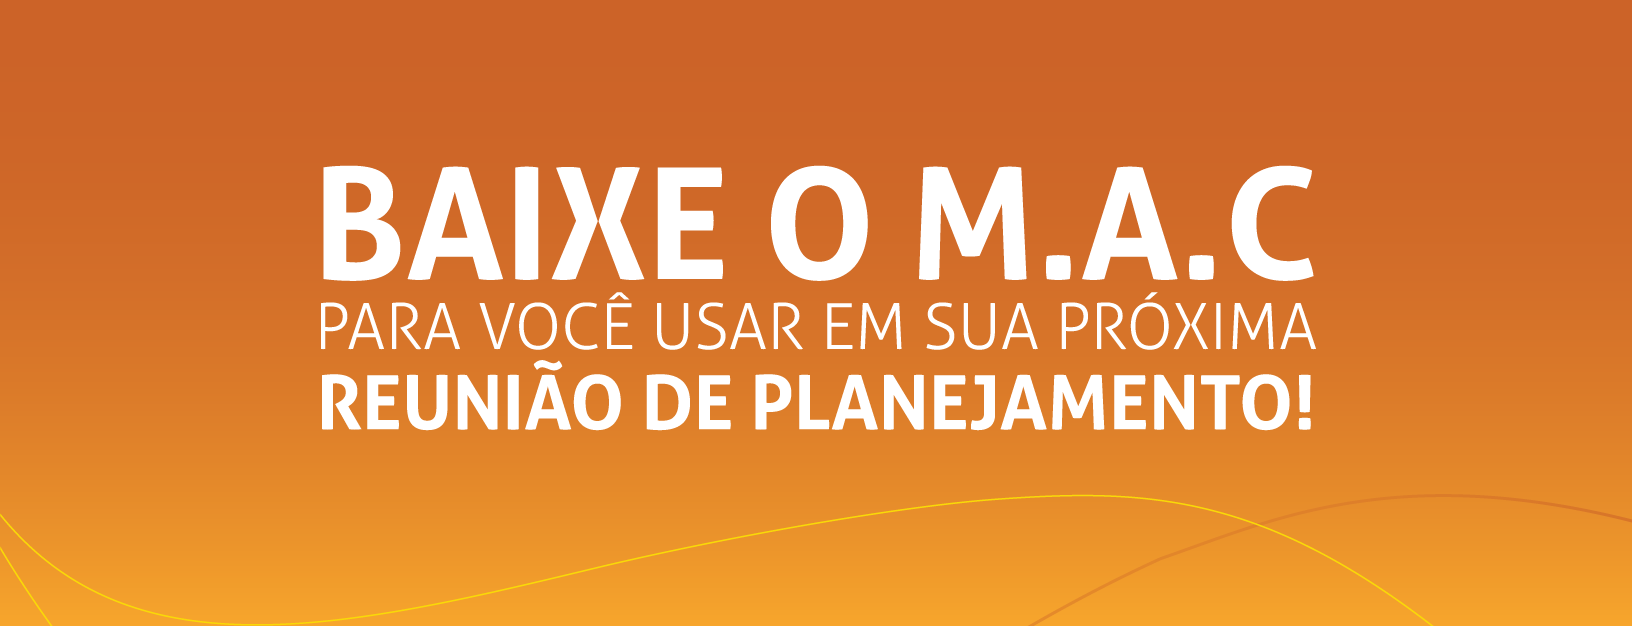 mac - ações de marketing